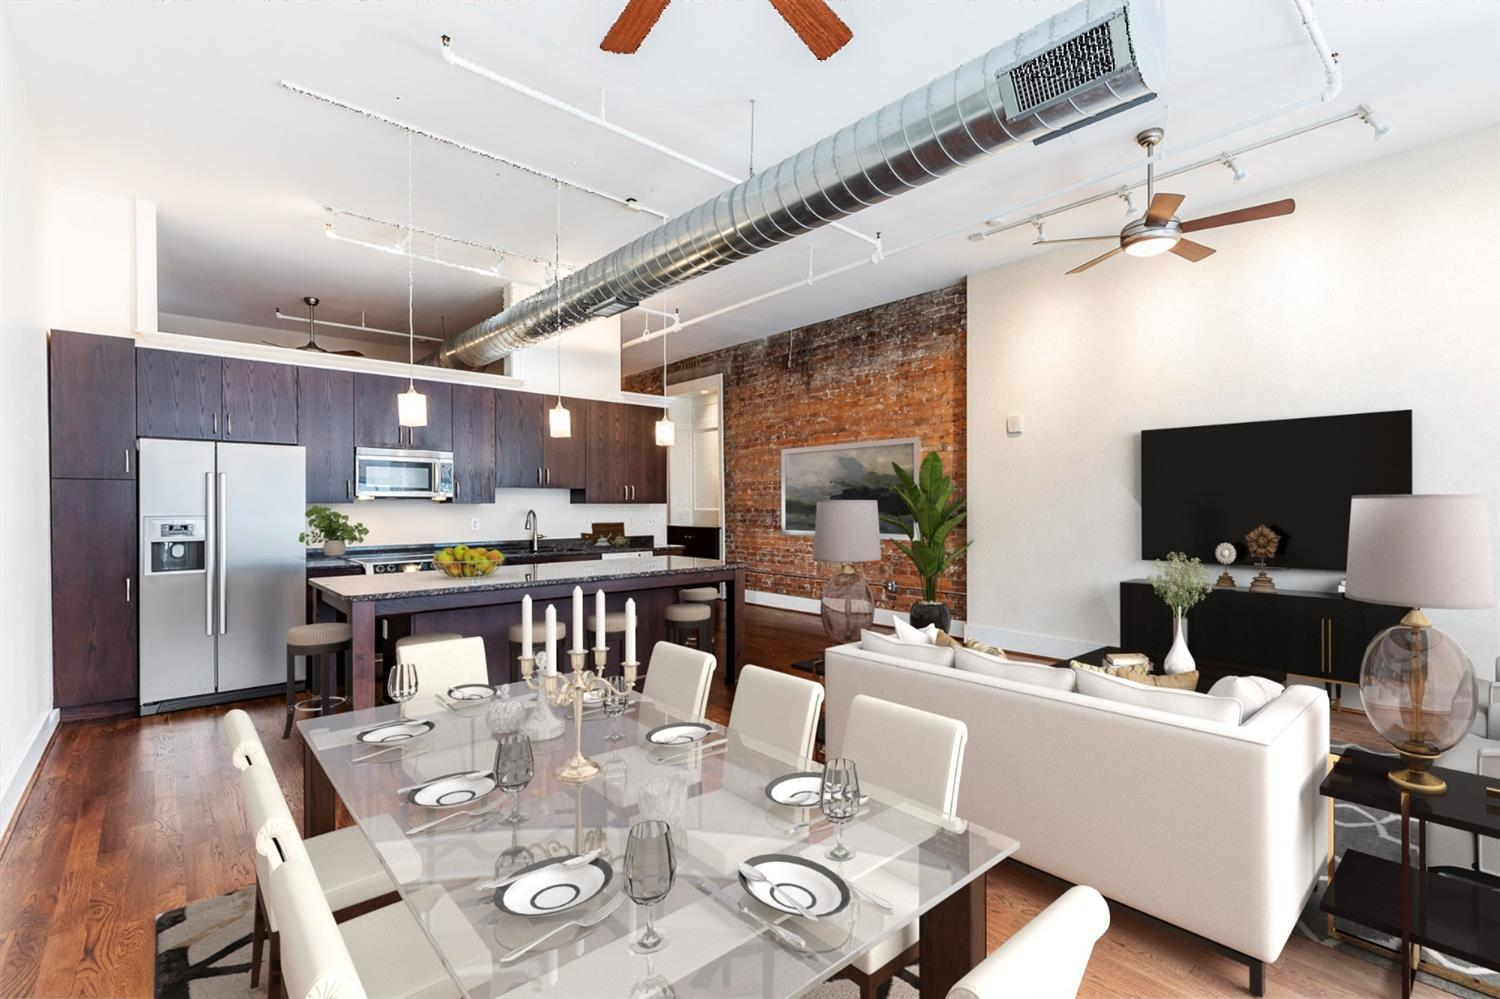 Entertaining made easy or create another seating area.  The entry includes a beautiful bar nook. Soaring ceilings give this spacious area a larger spatial dimension.